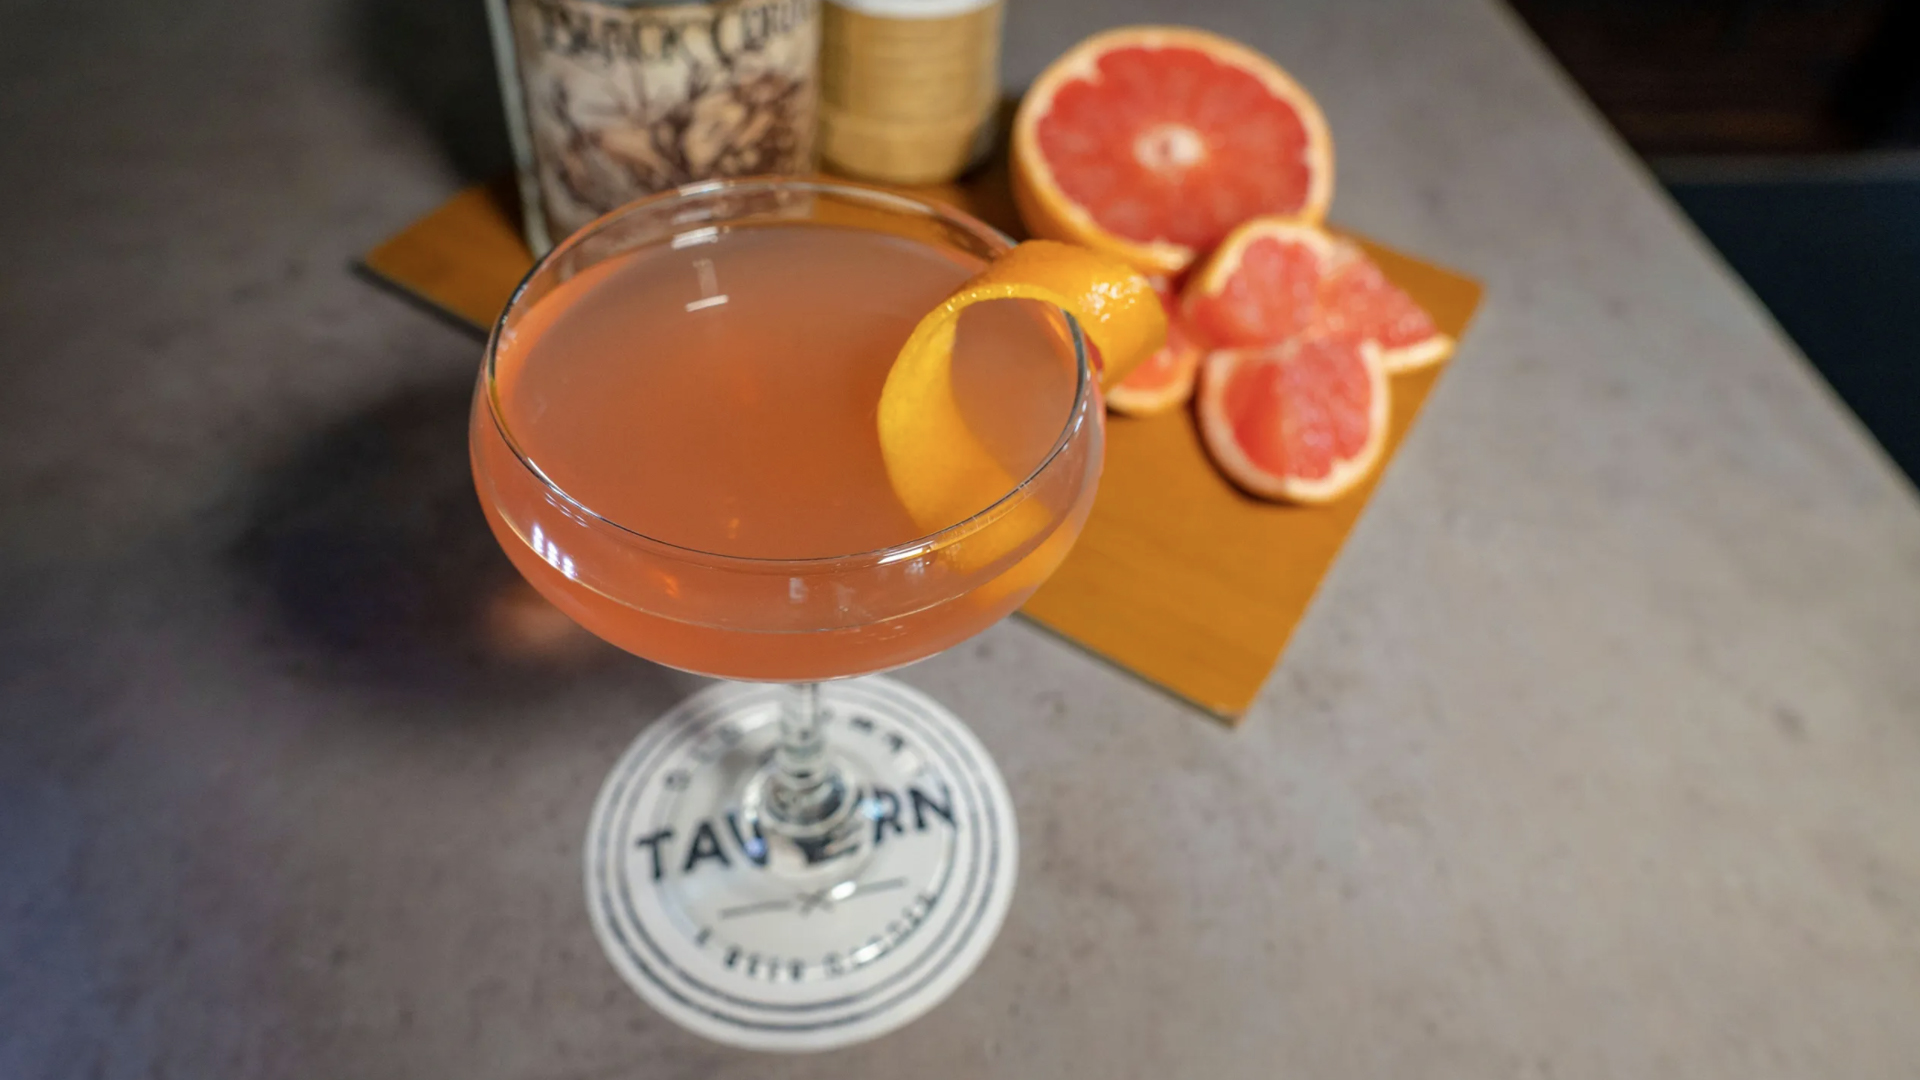 Old Town Tavern cocktail